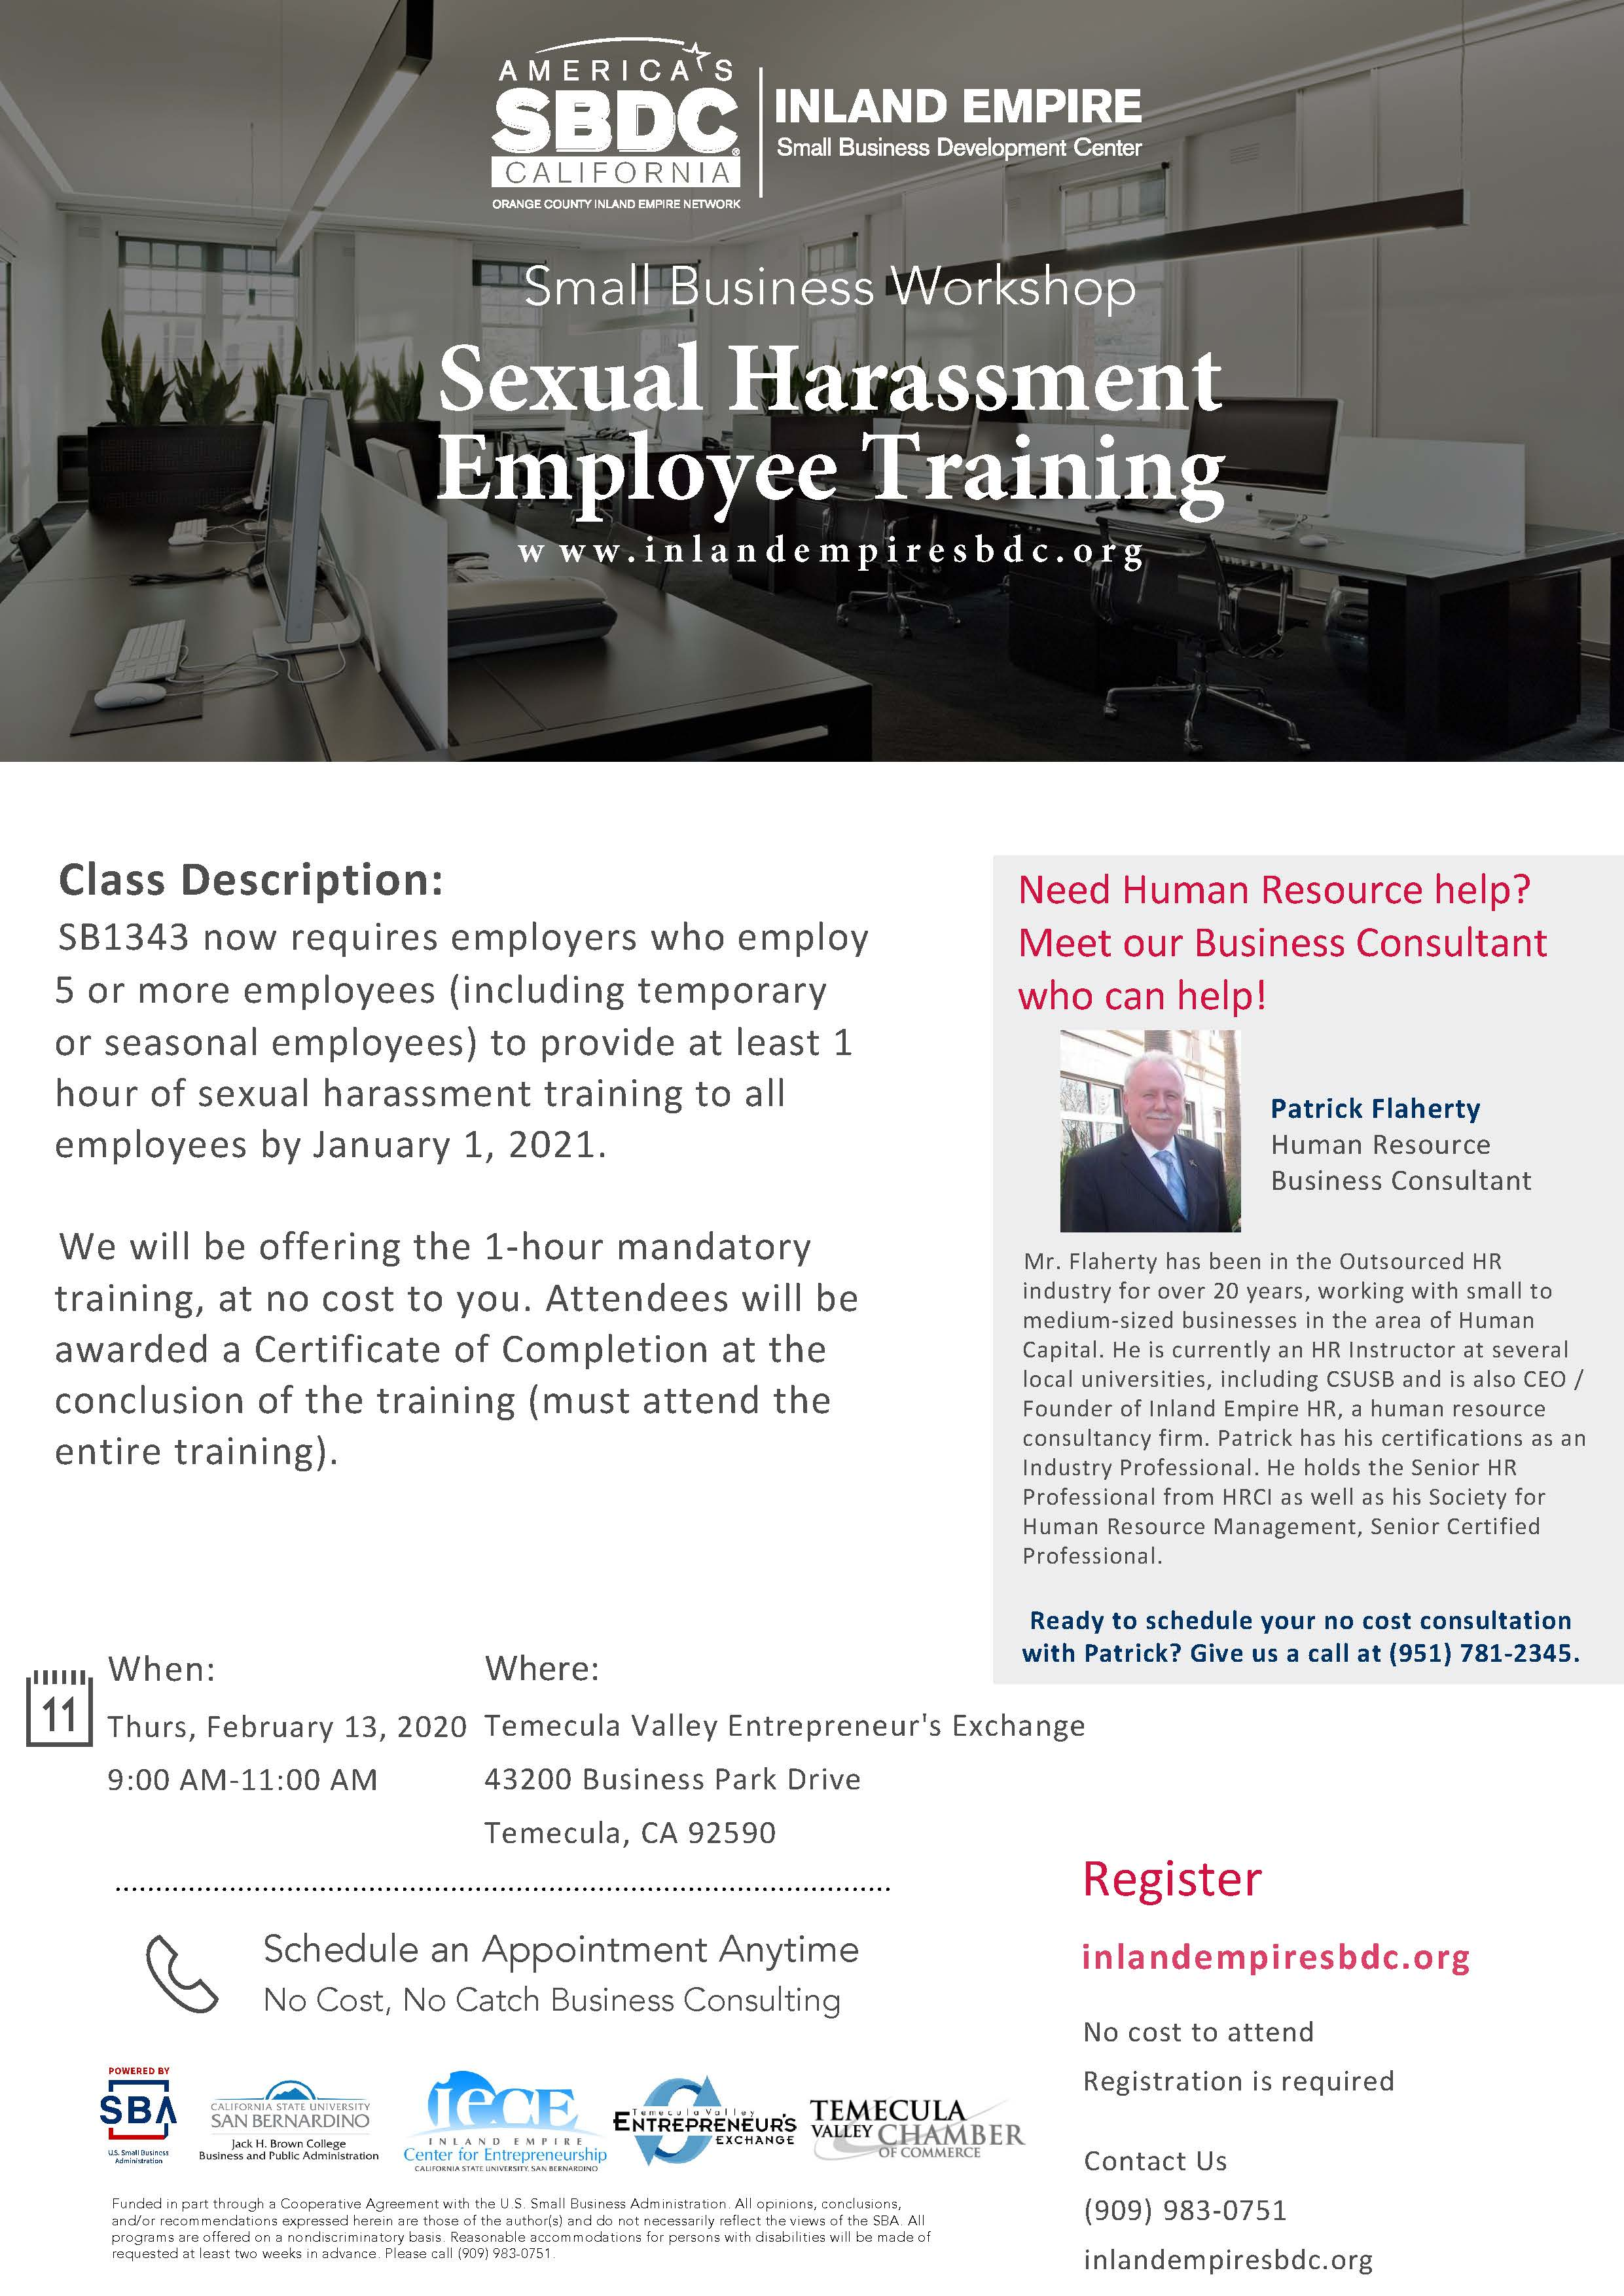 2-13 Sexual Harassment Employee Training (Temecula)